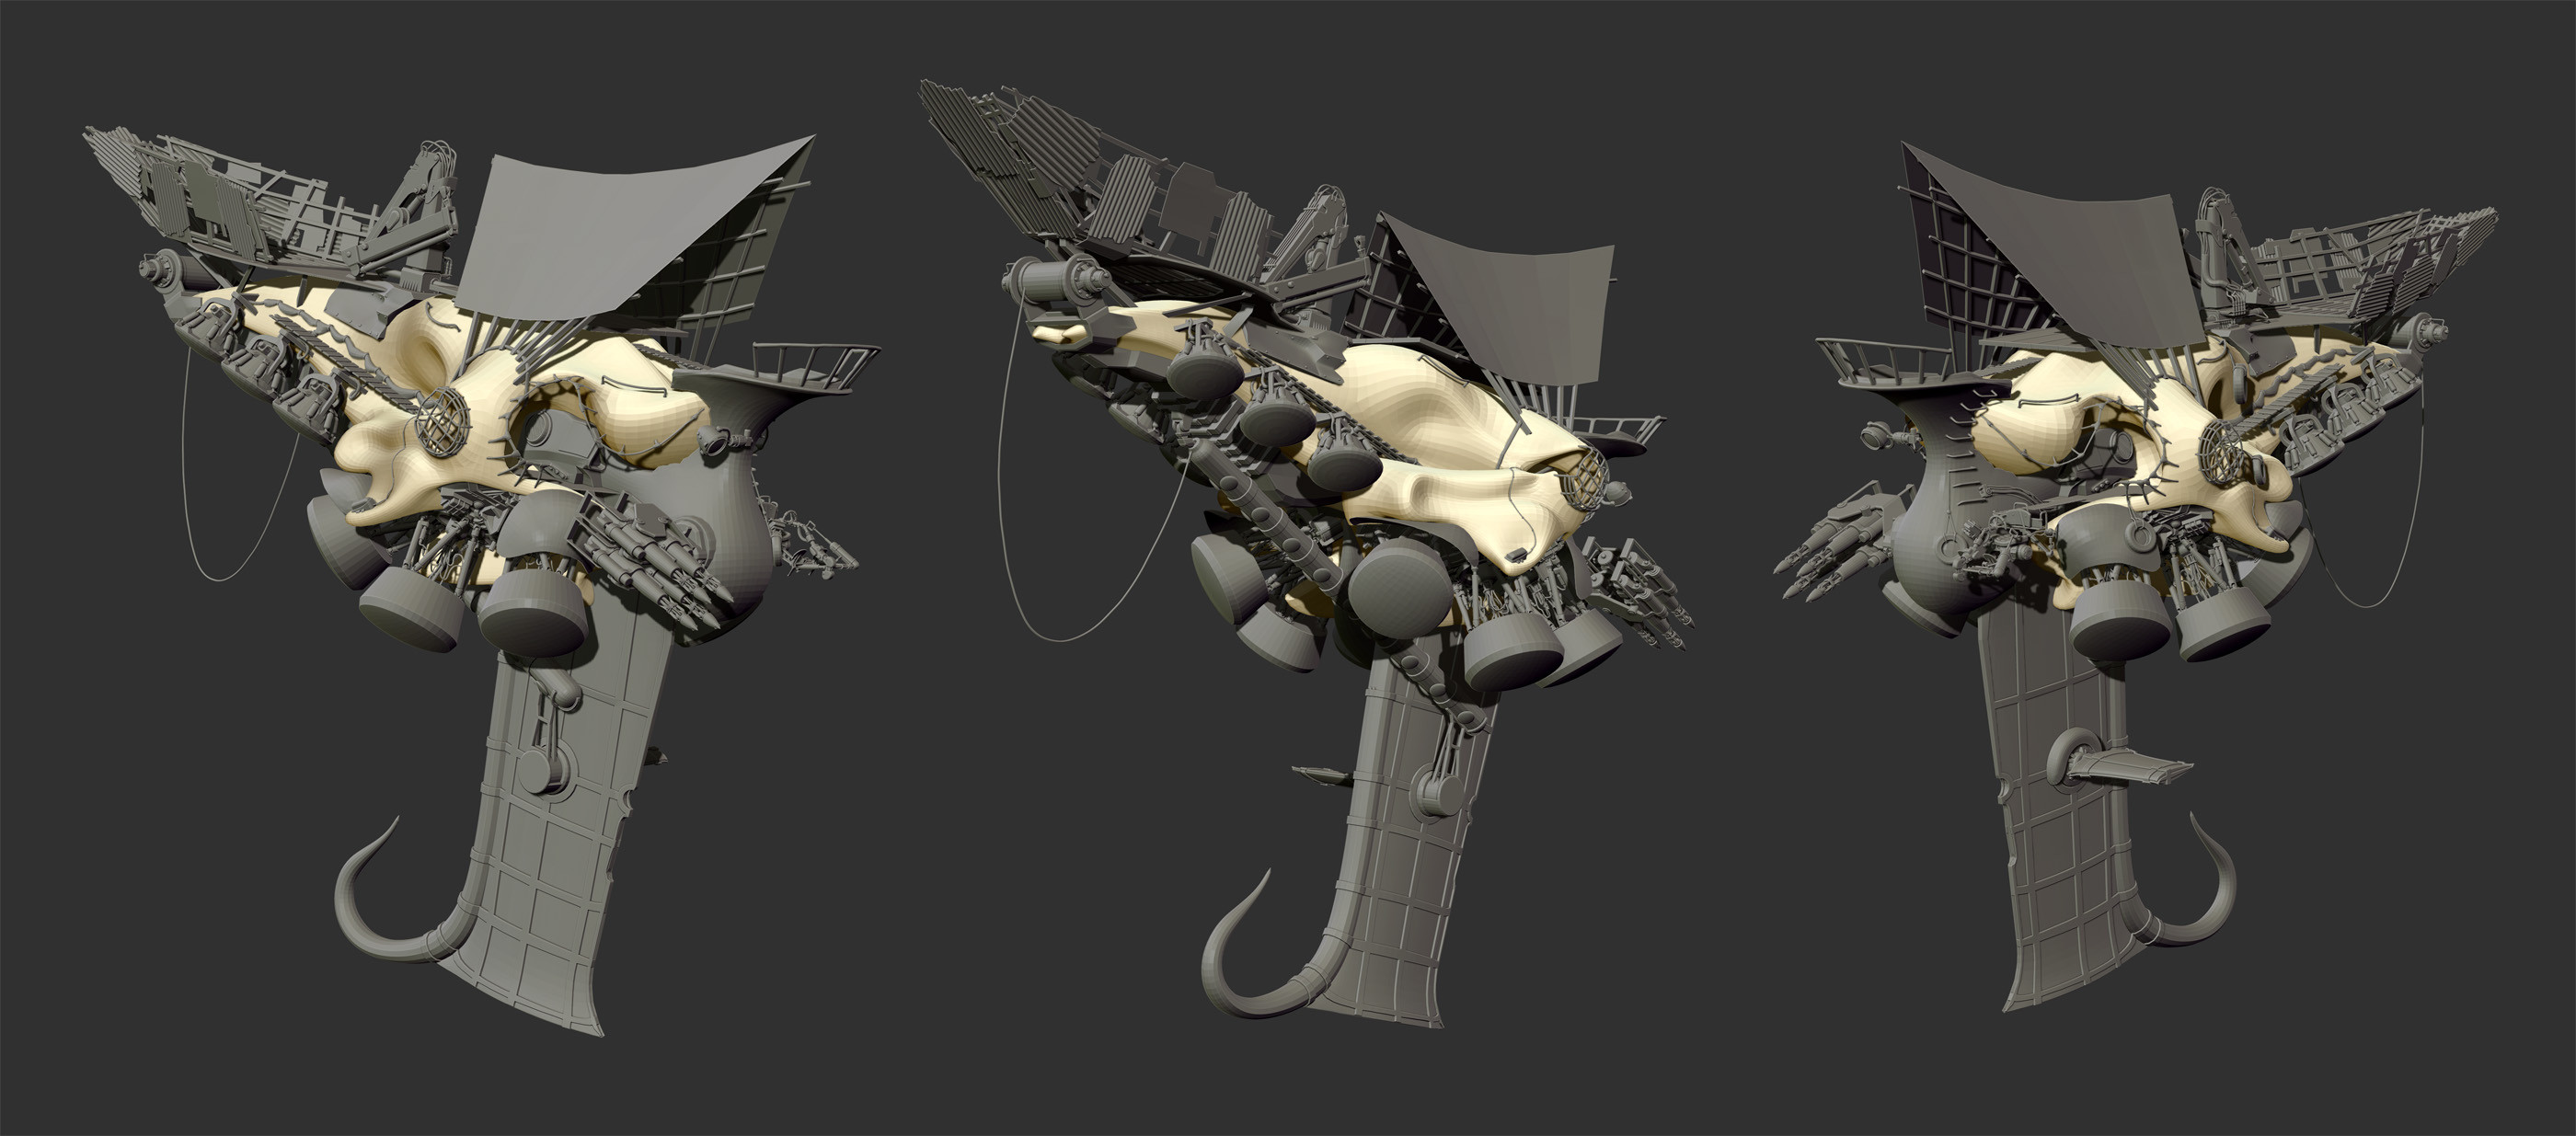 The final model in ZBrush